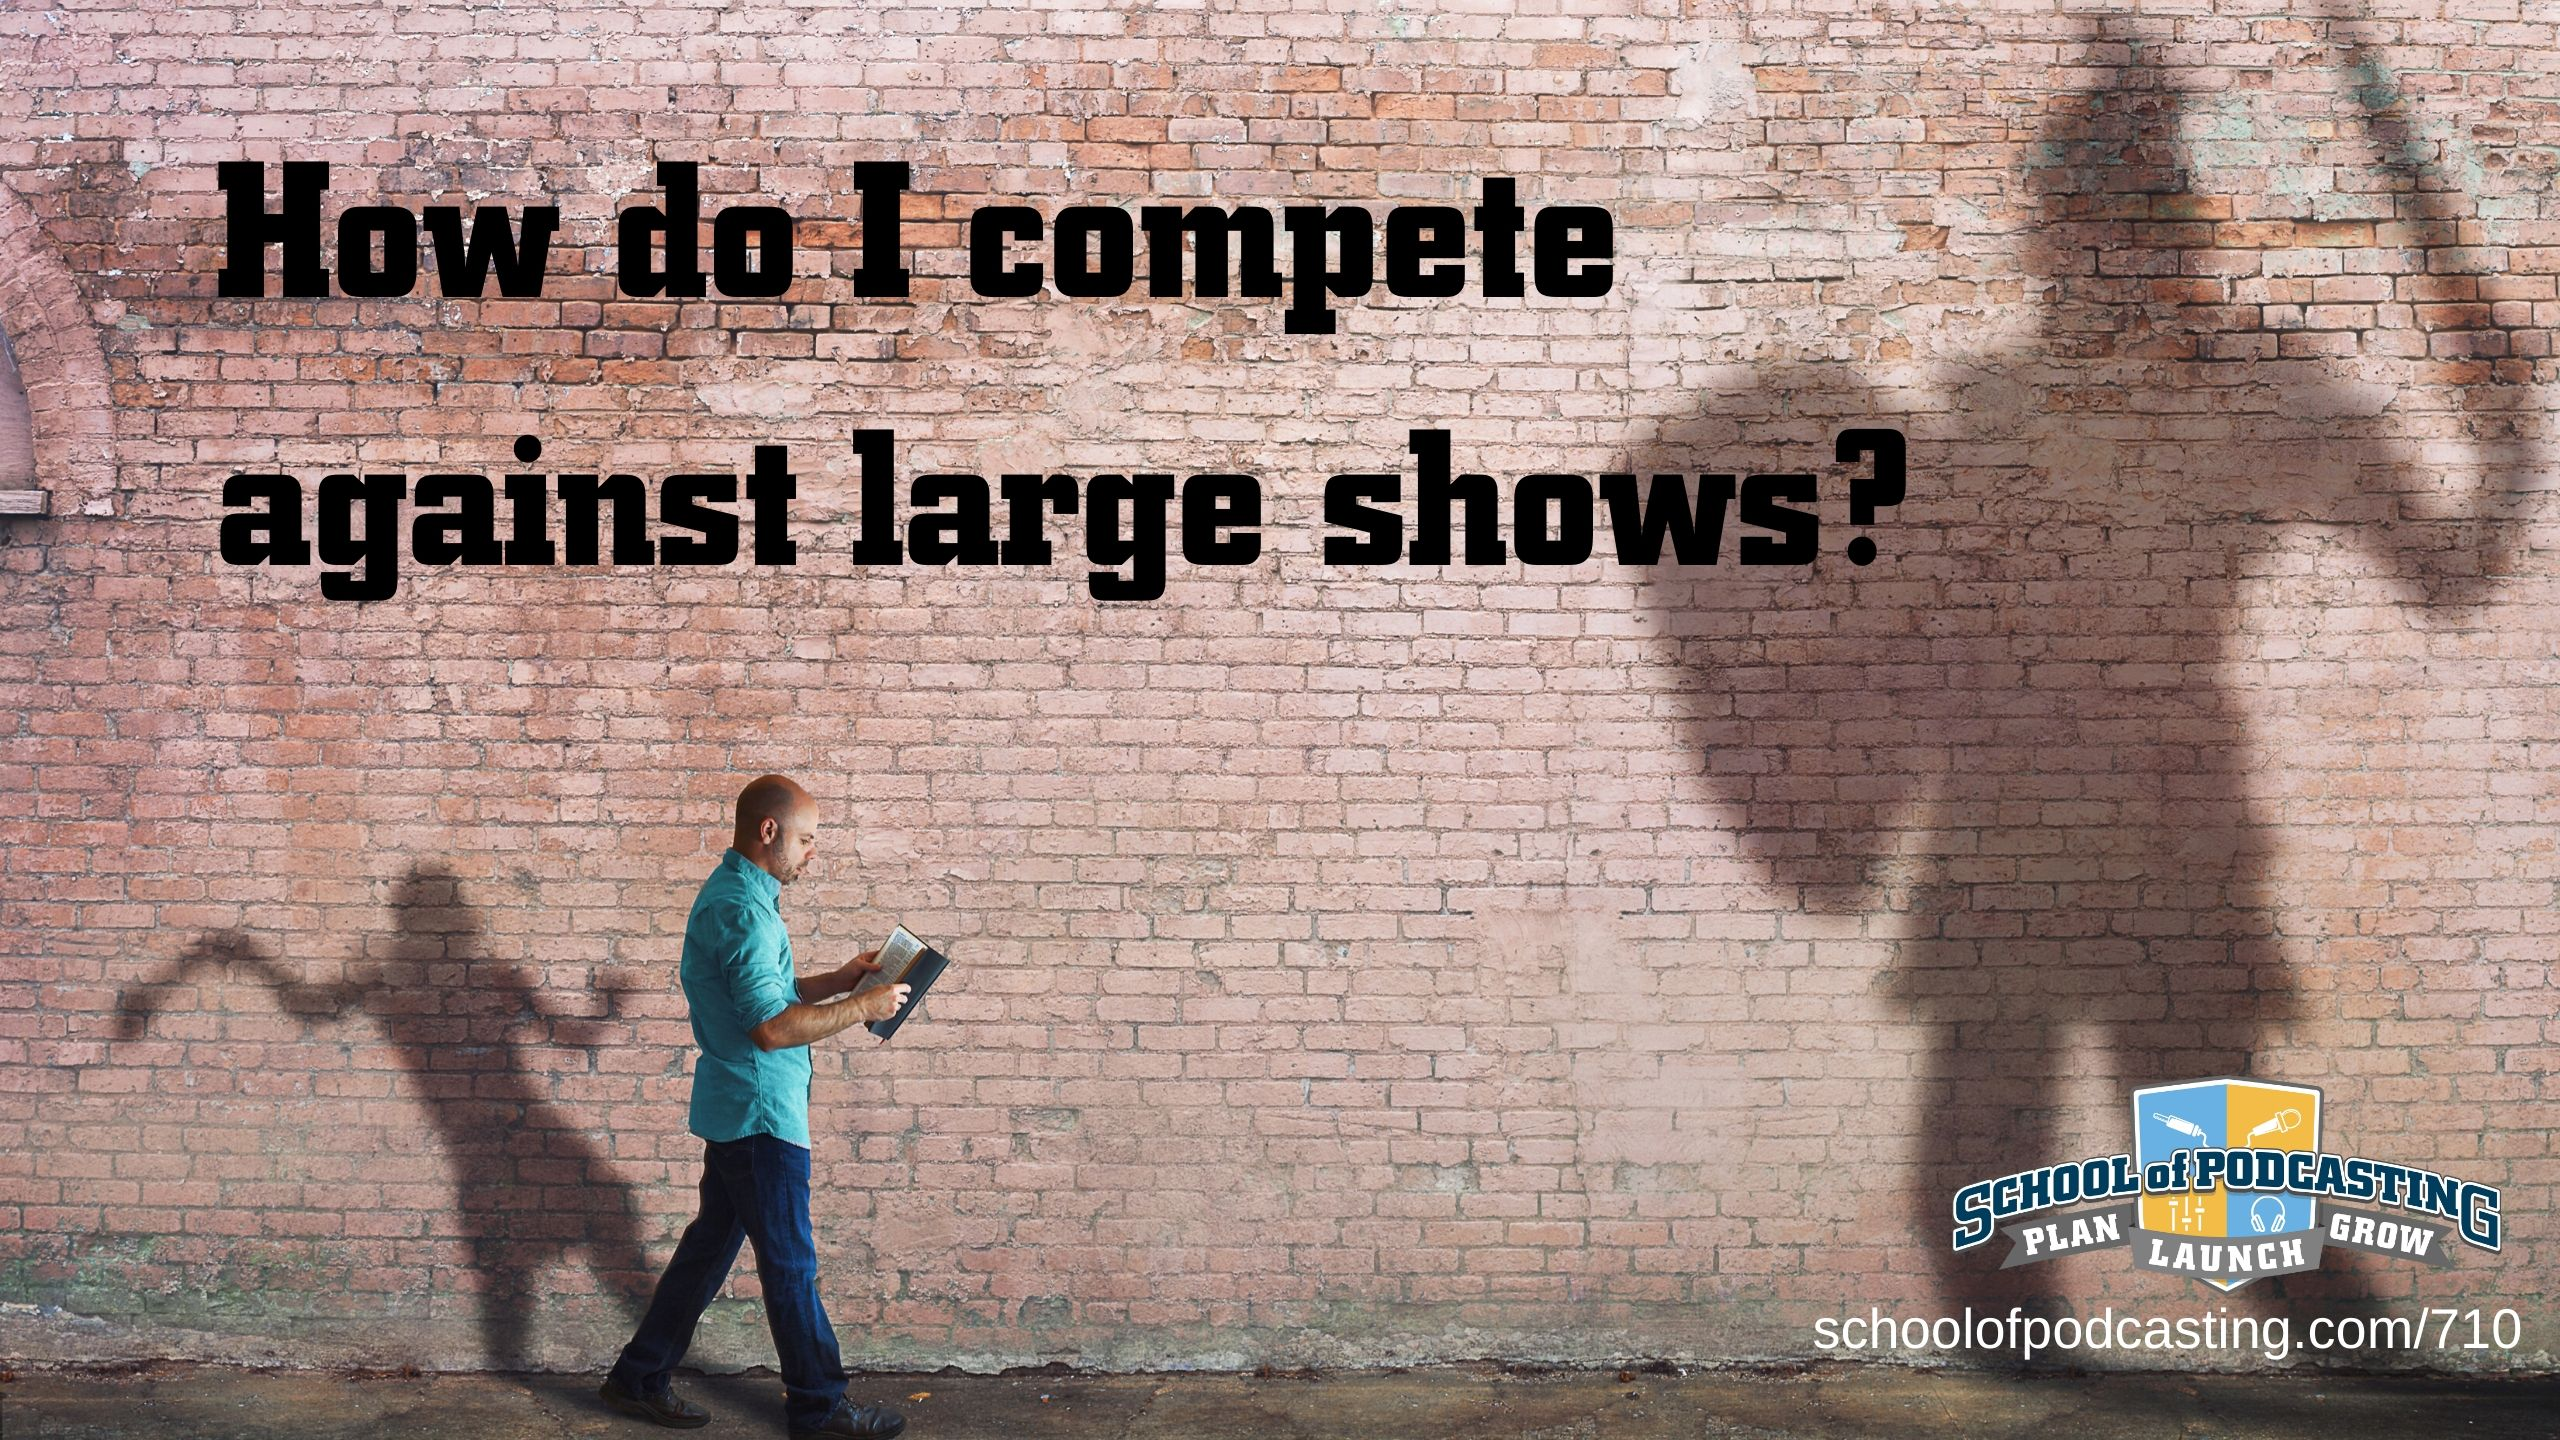 How do Small Podcasts Compete?